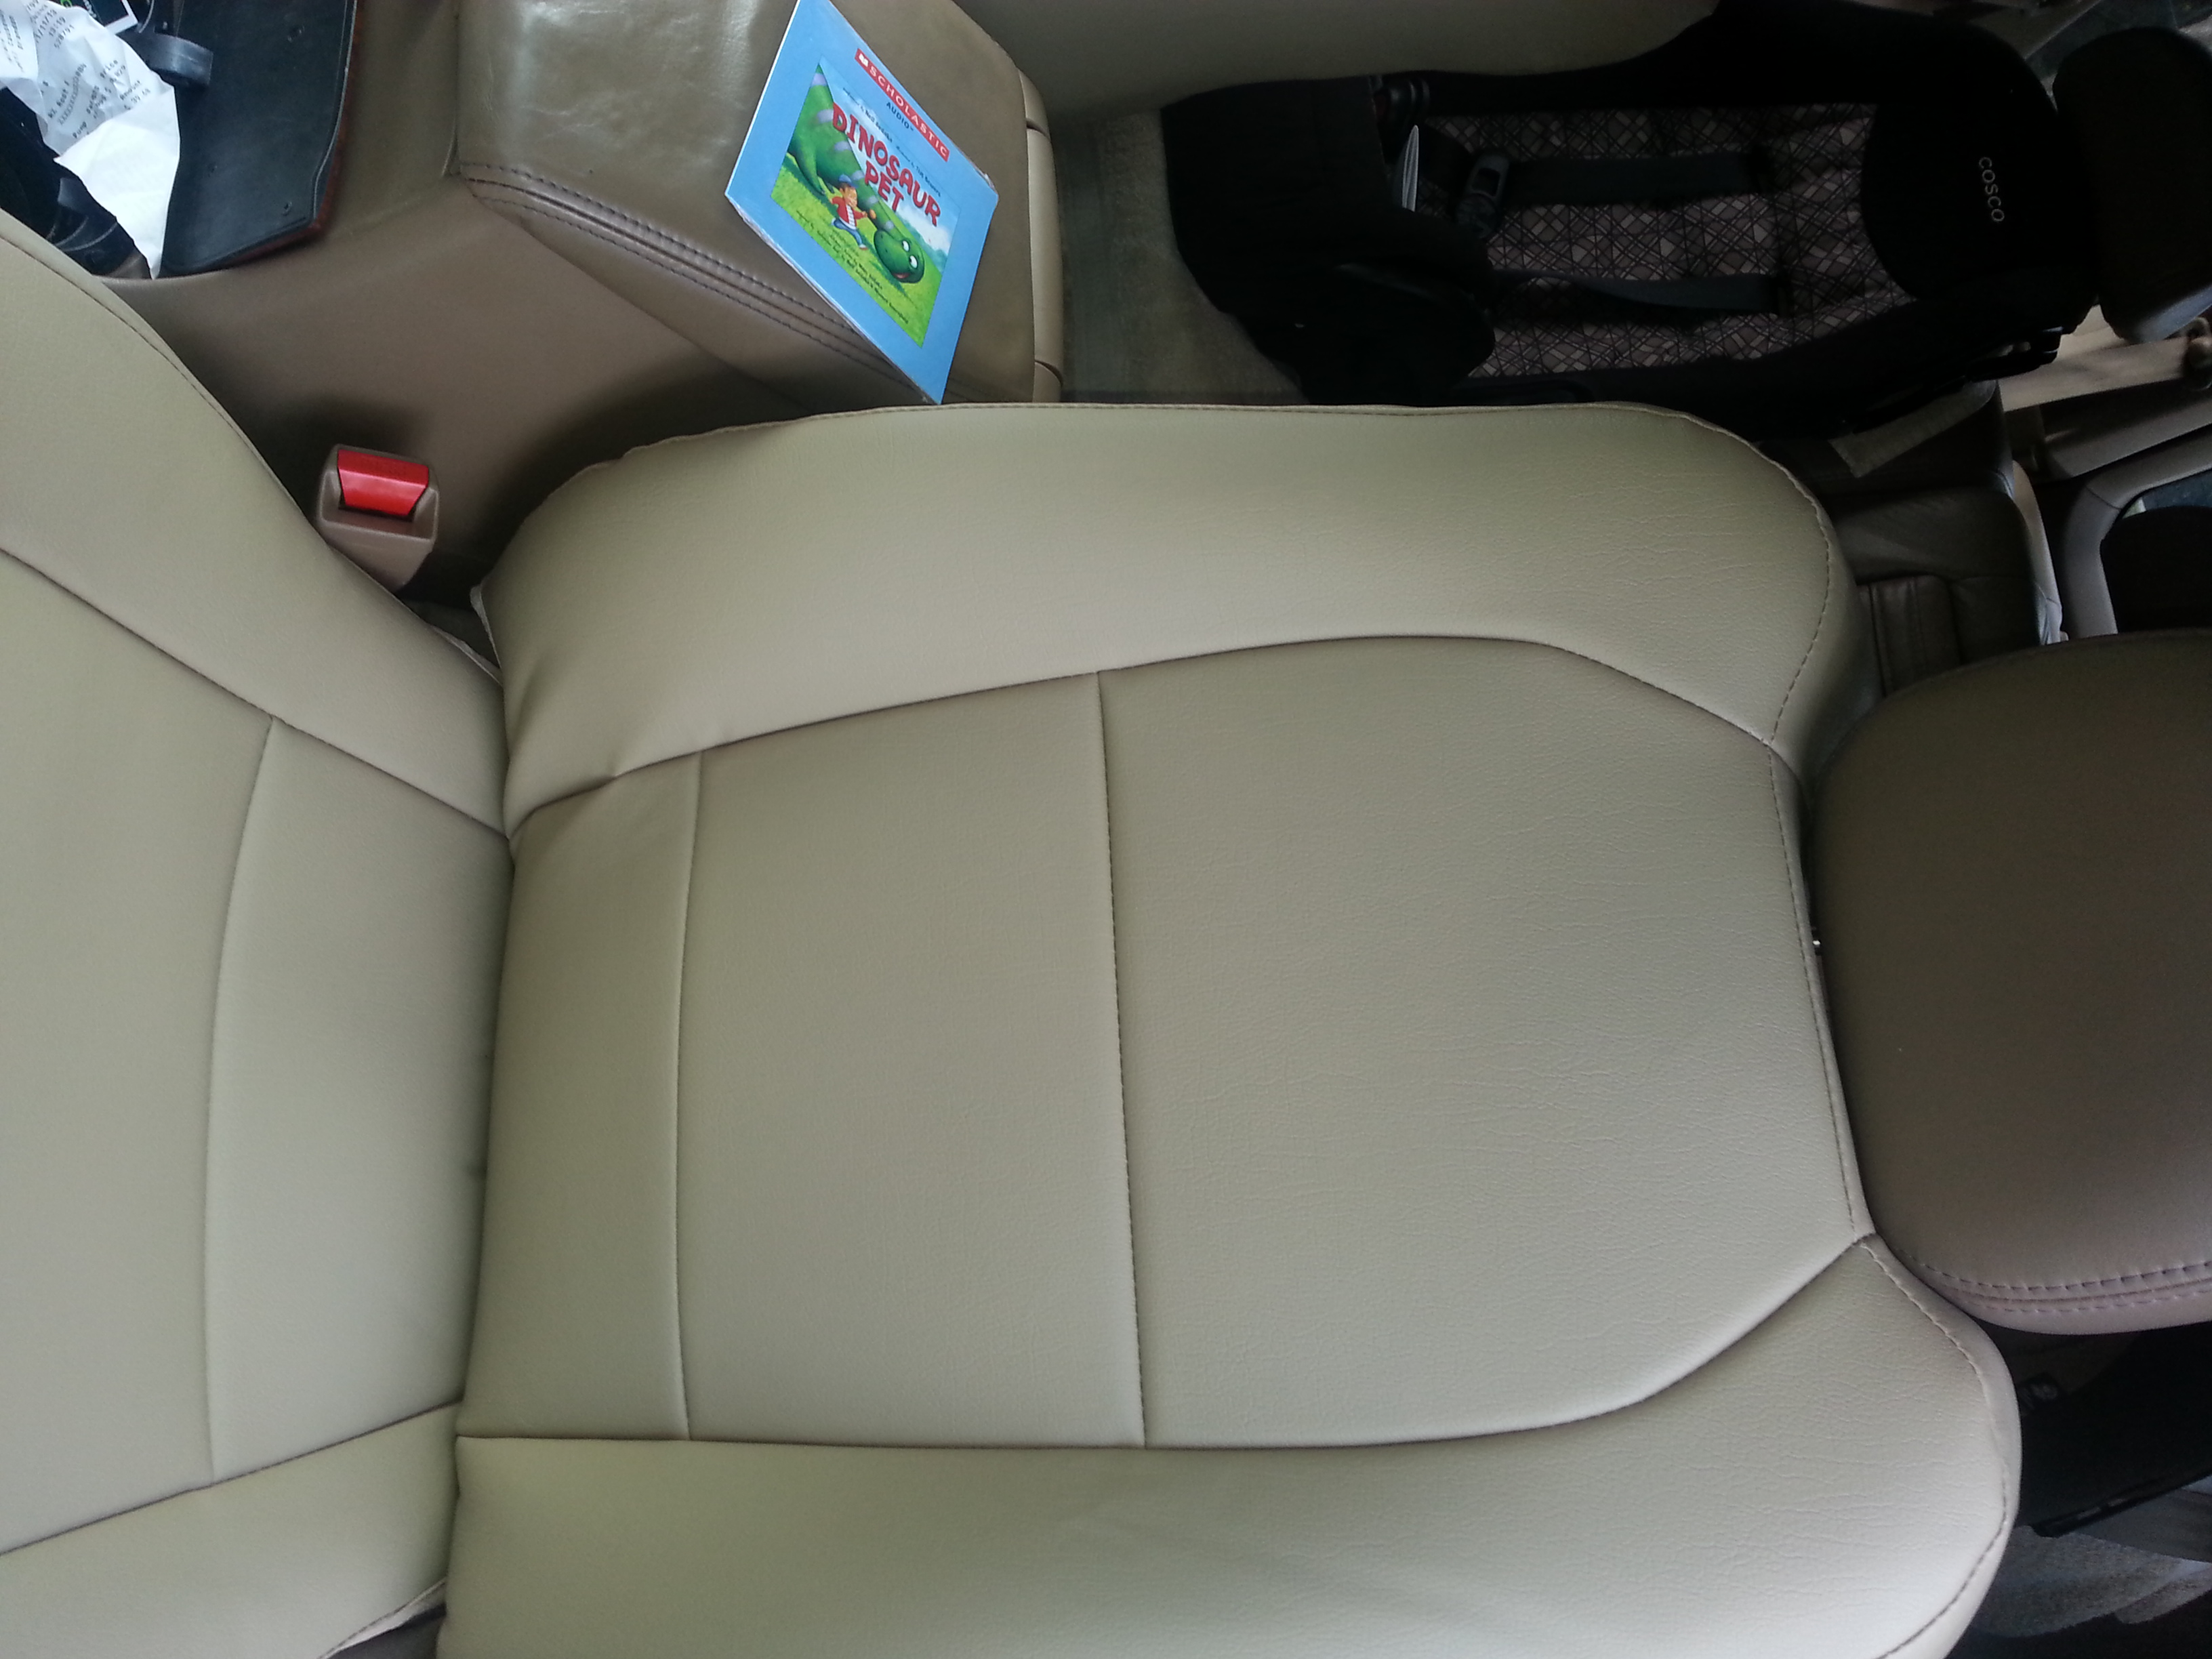 MDX Seat Covers Acura MDX Forum Acura MDX SUV Forums - Acura mdx seat covers